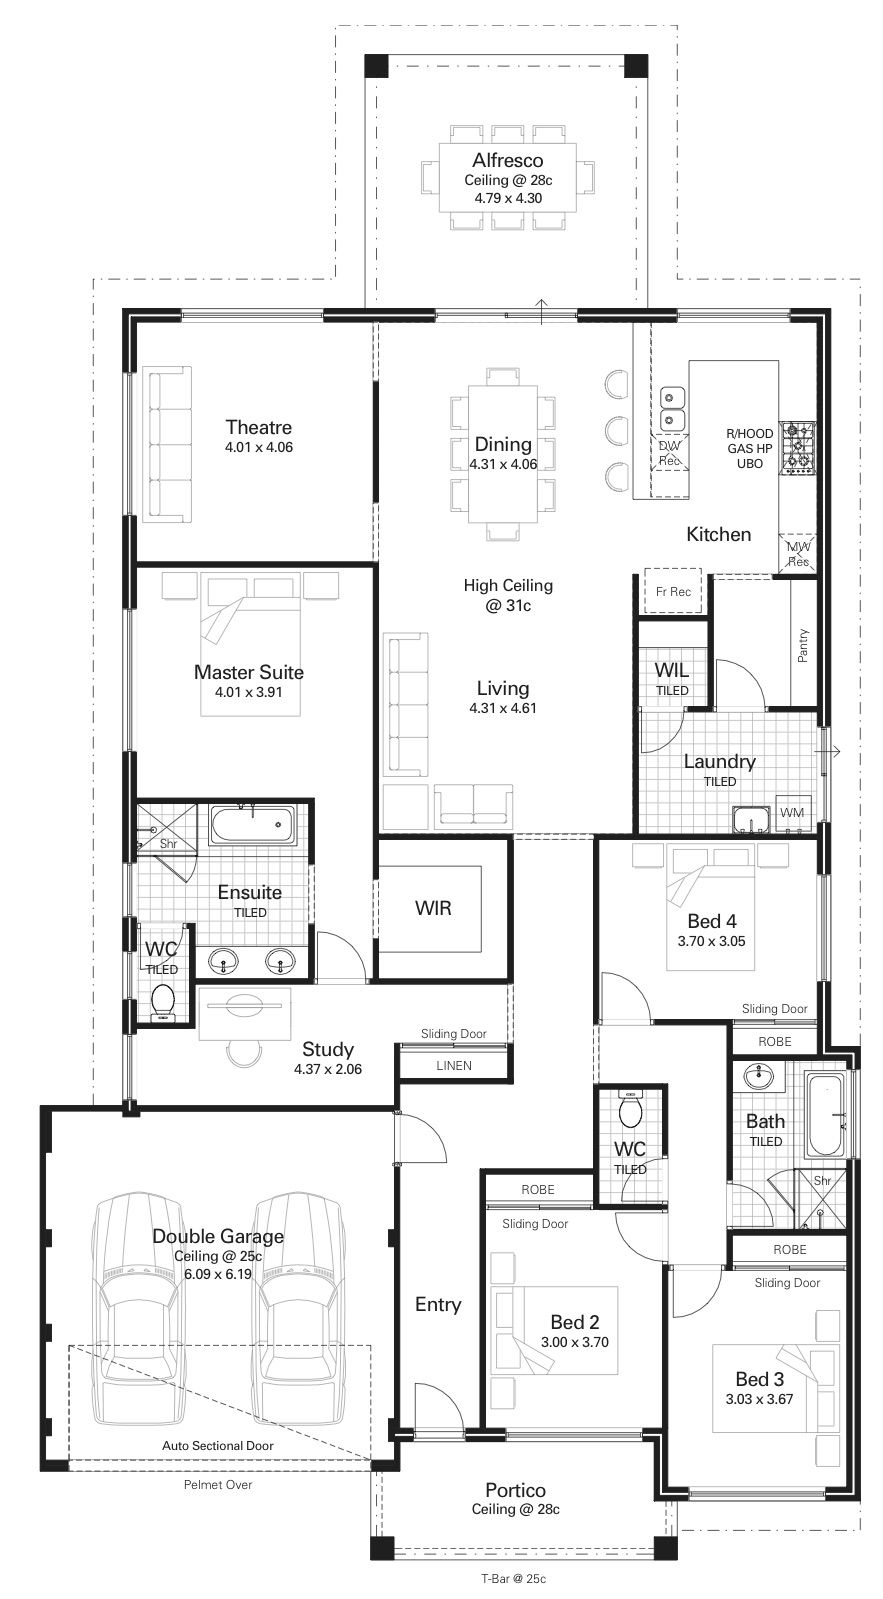 Floor Plan Friday 4 Bedroom Study High Ceilings Kitchen On The Rear Floor Plans Dream House Plans How To Plan